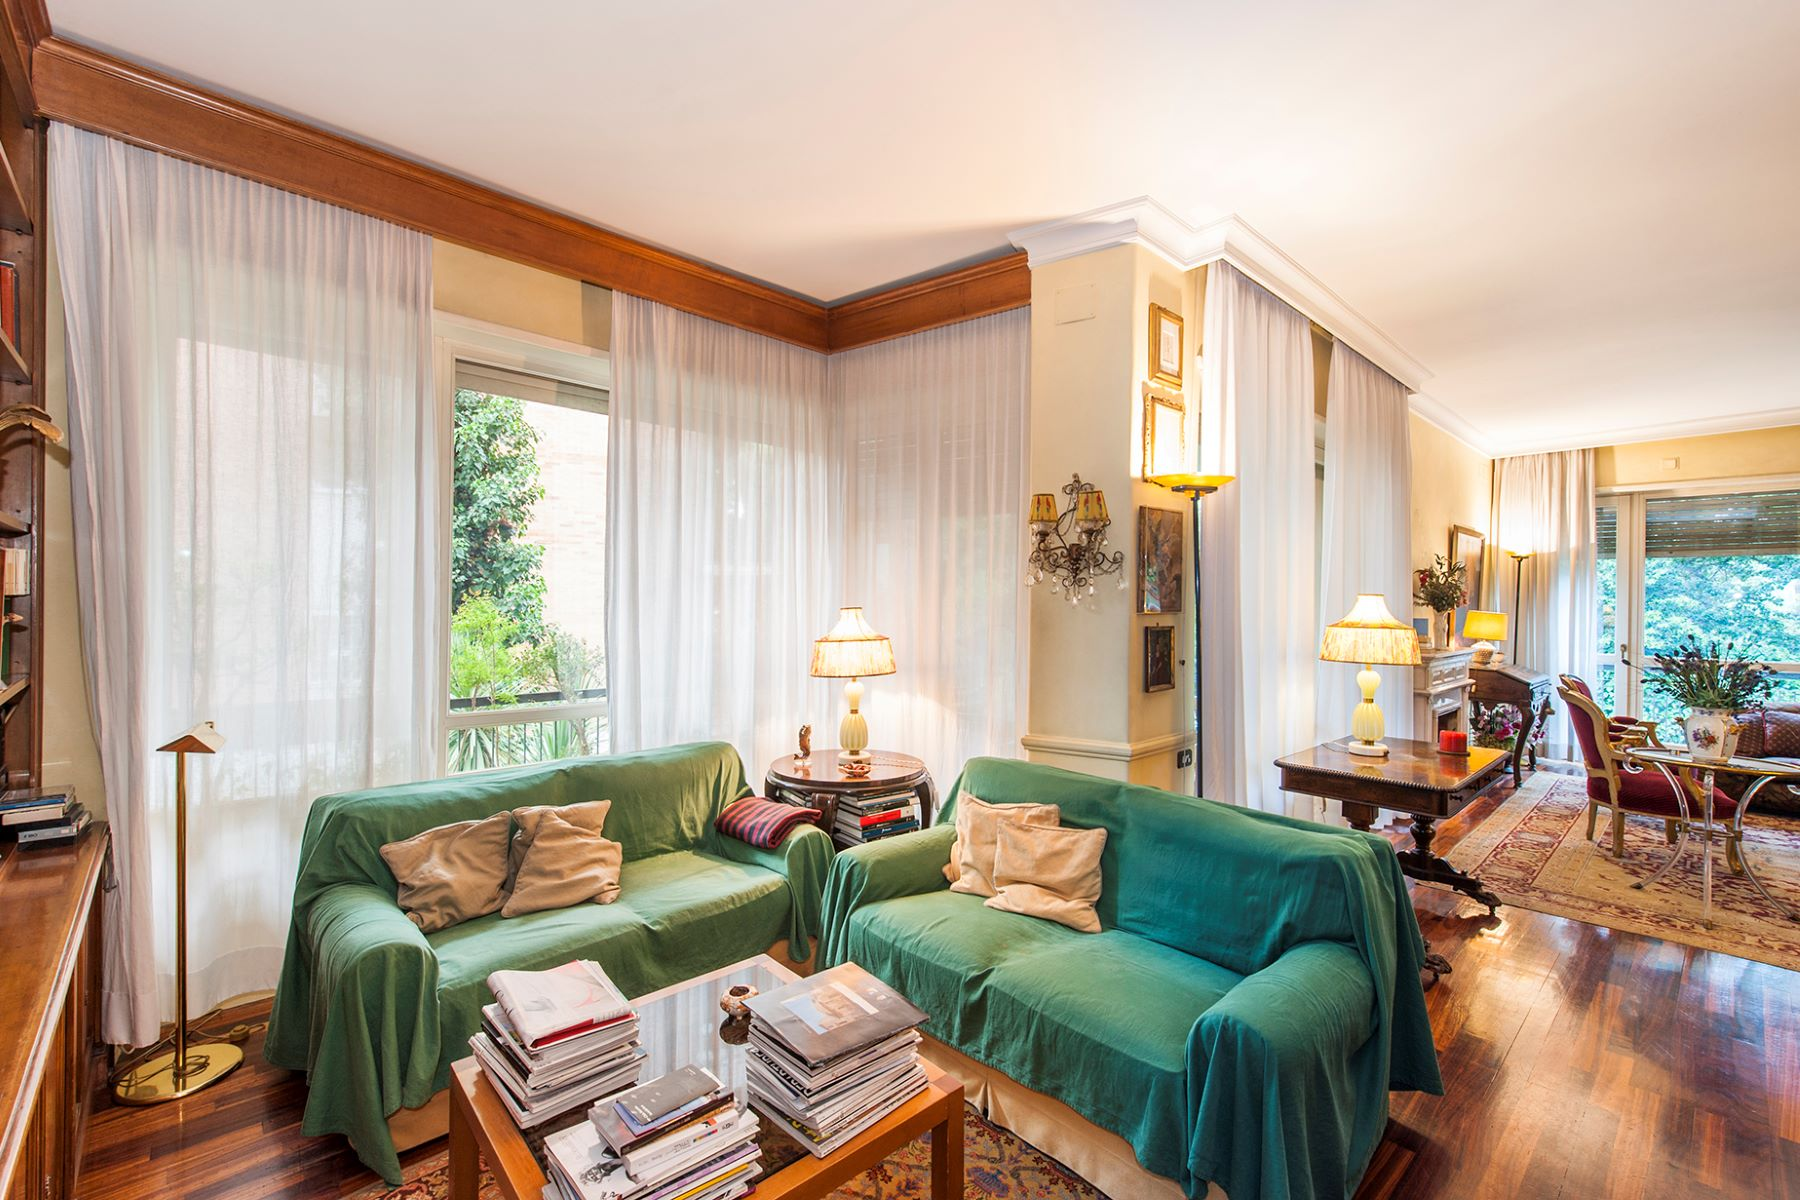 Additional photo for property listing at Elegant apartment in Viale Cortina d'Ampezzo  Rome, Rome 00135 Italien